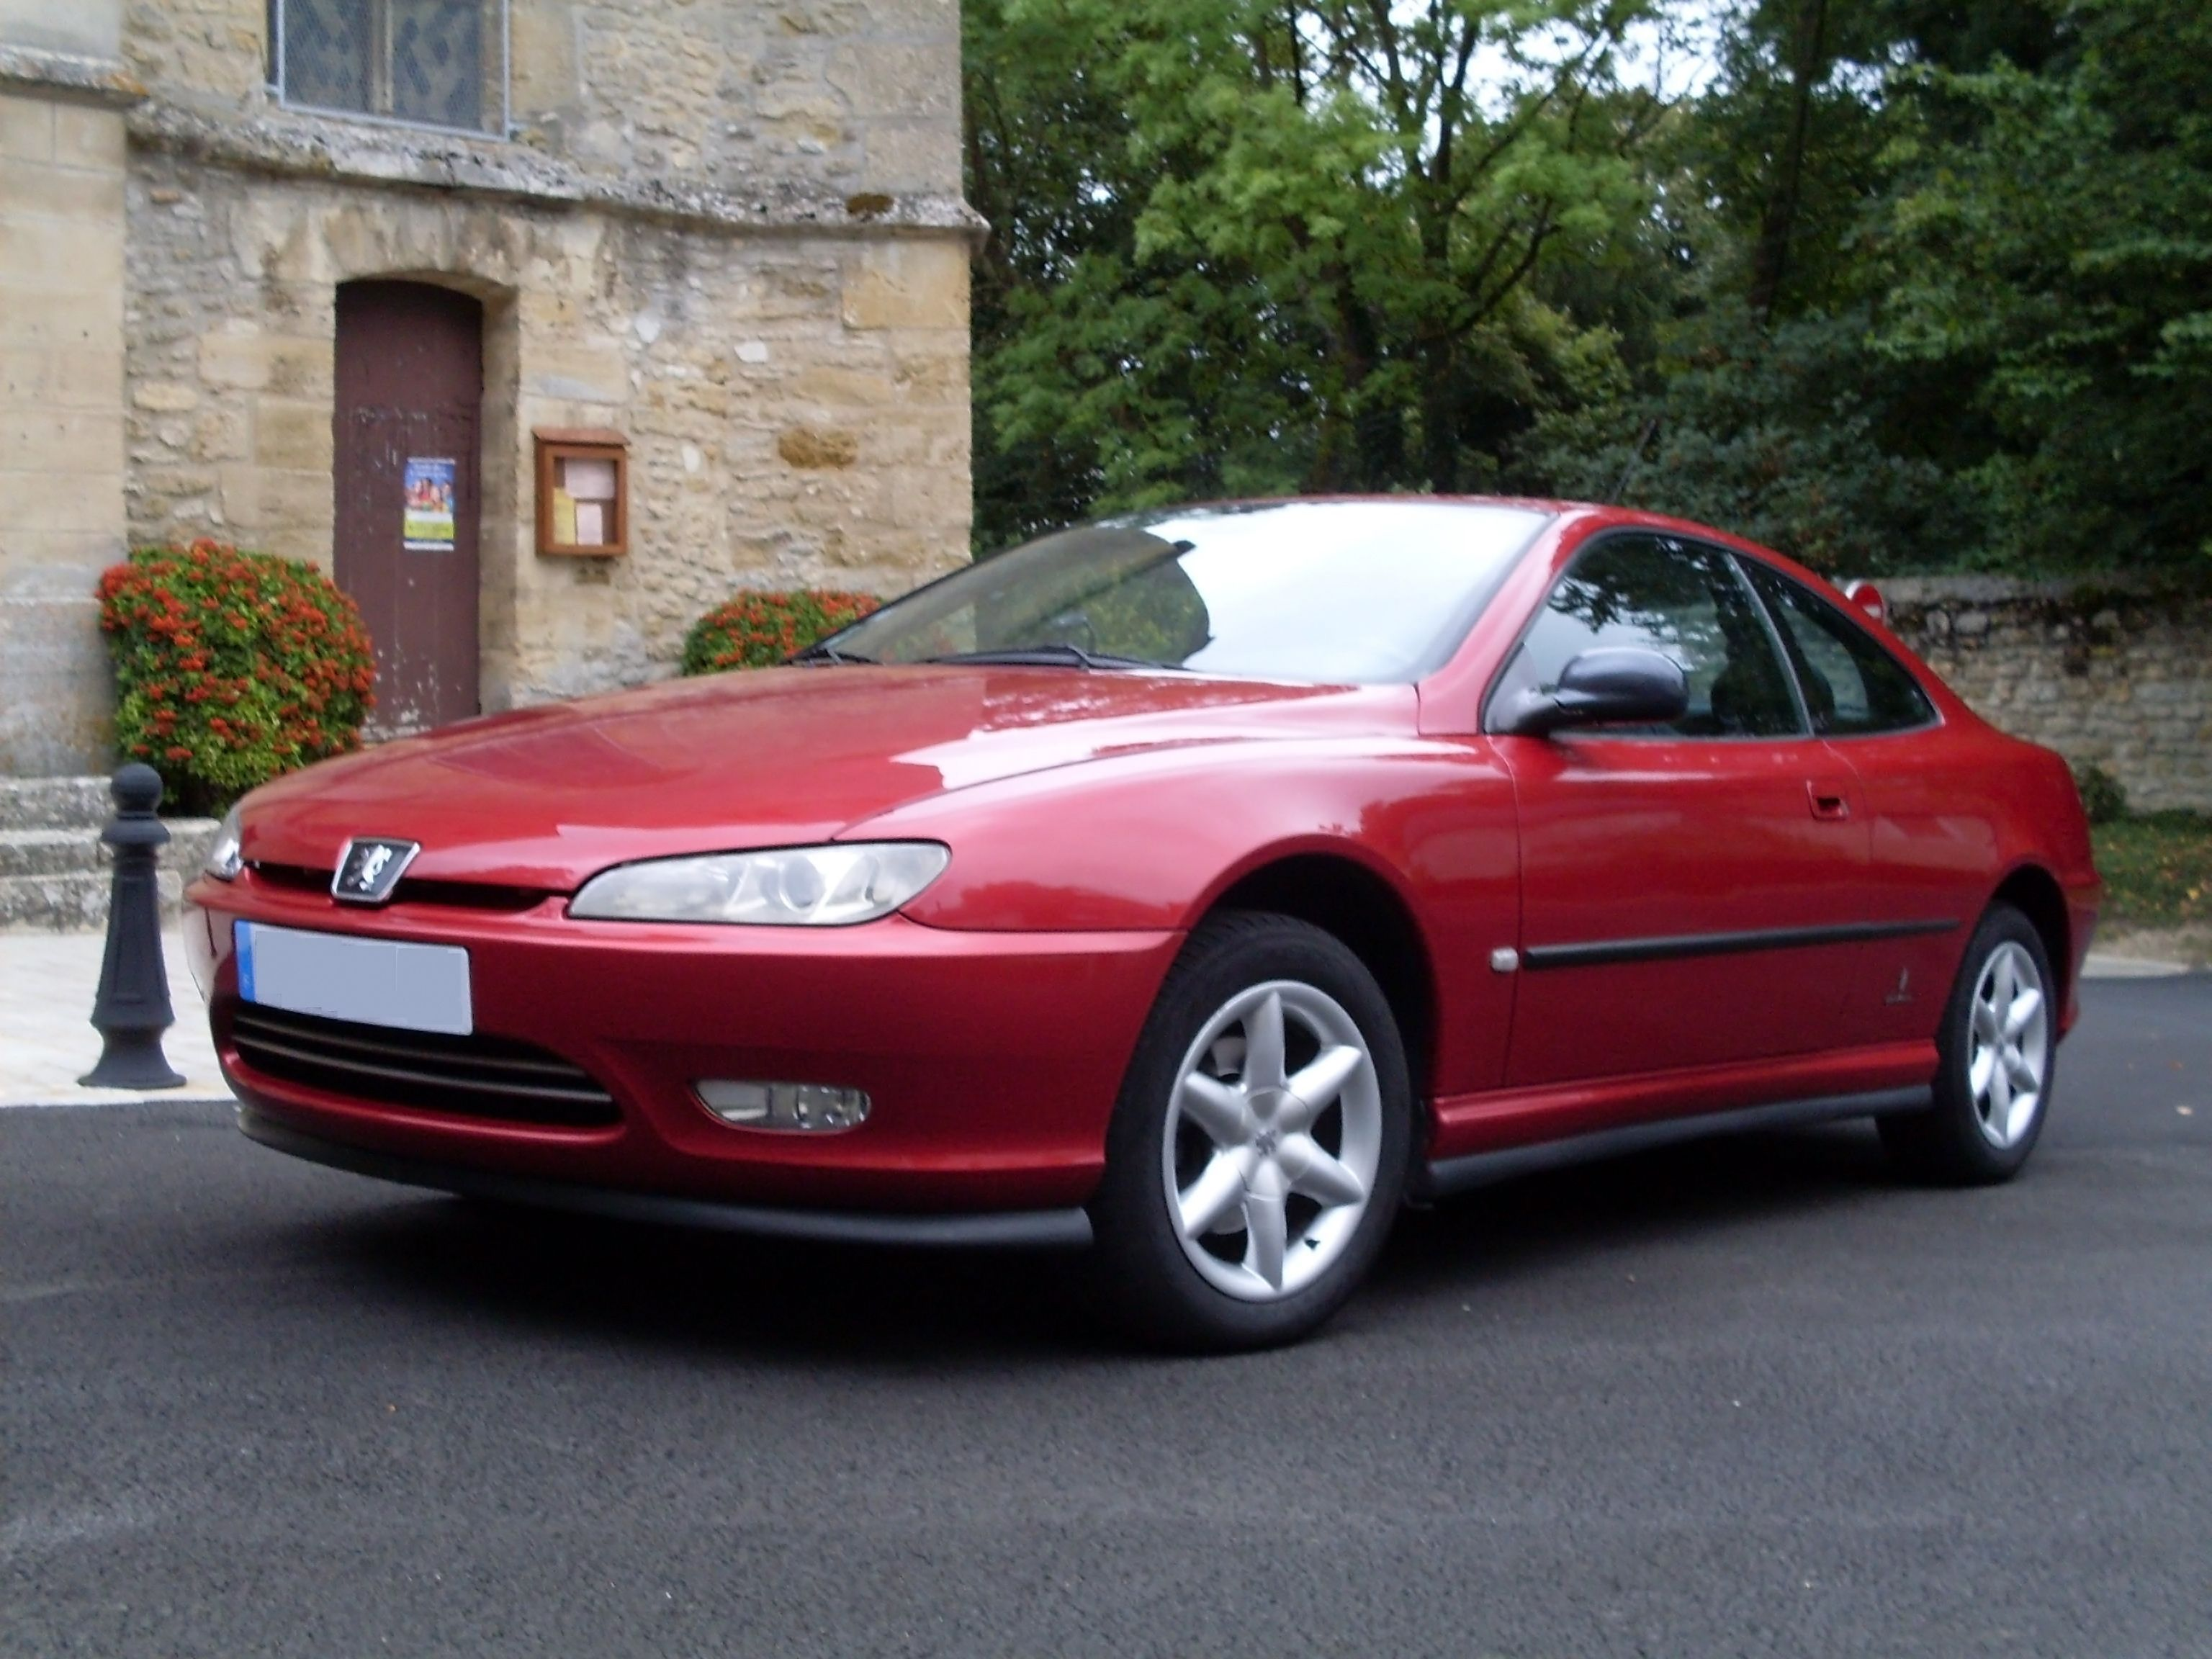 Peugeot 406 coupe R896 GTU - so beautiful I washed it EVERY weekend, just  to admire it!